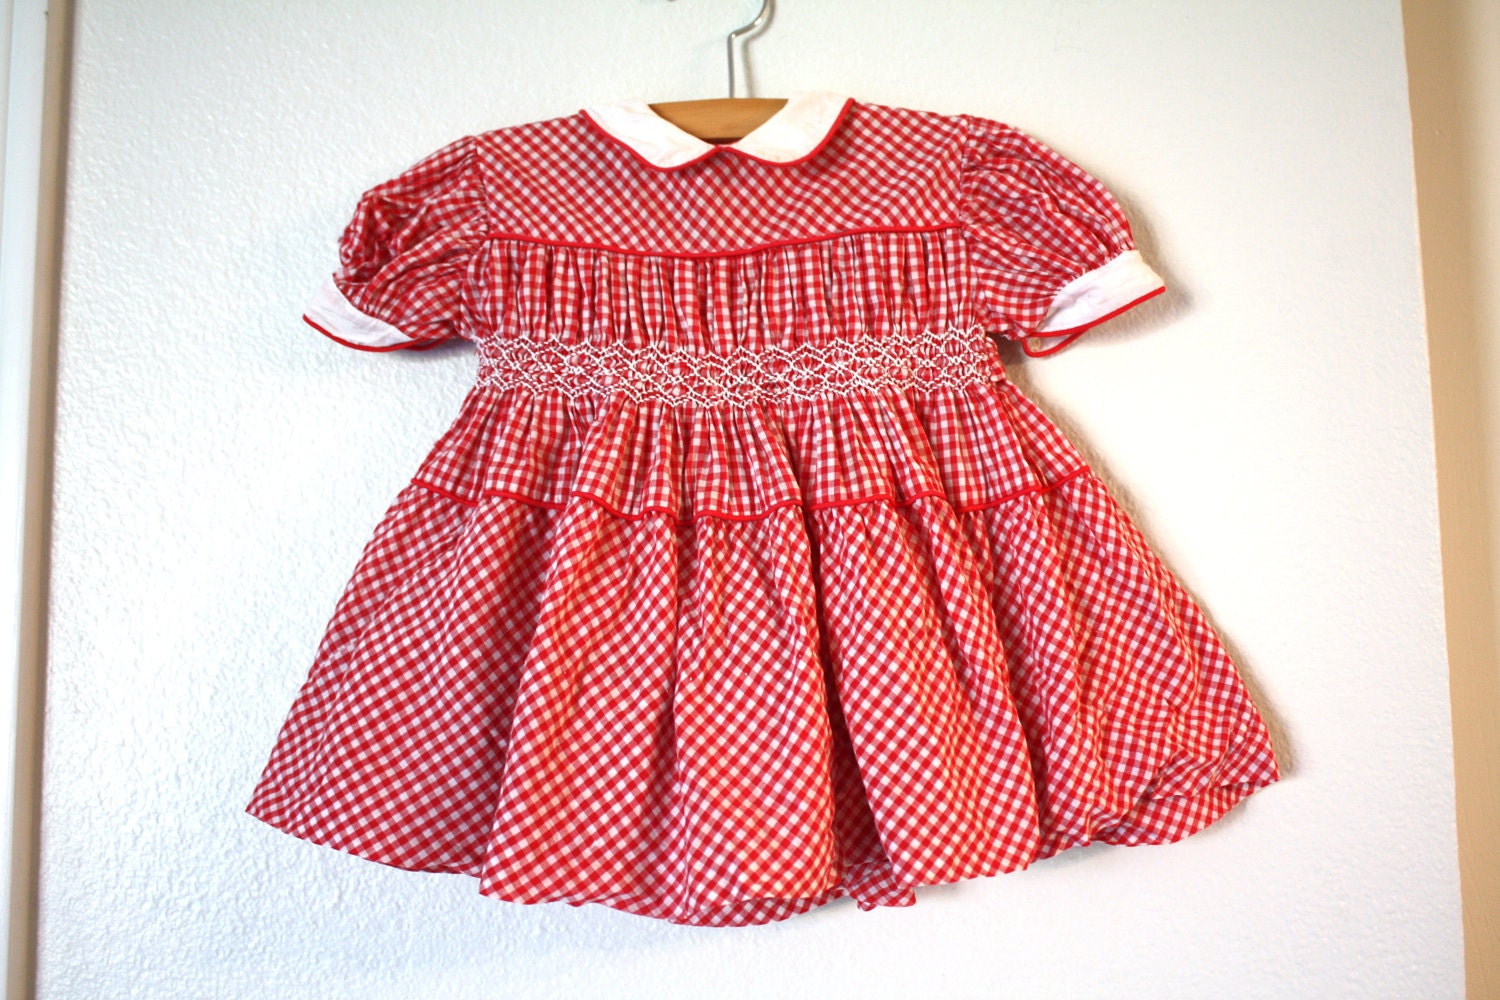 Red Gingham Baby Dress, 1950's Baby Dress, Size 2T - 1SweetDreamVintage